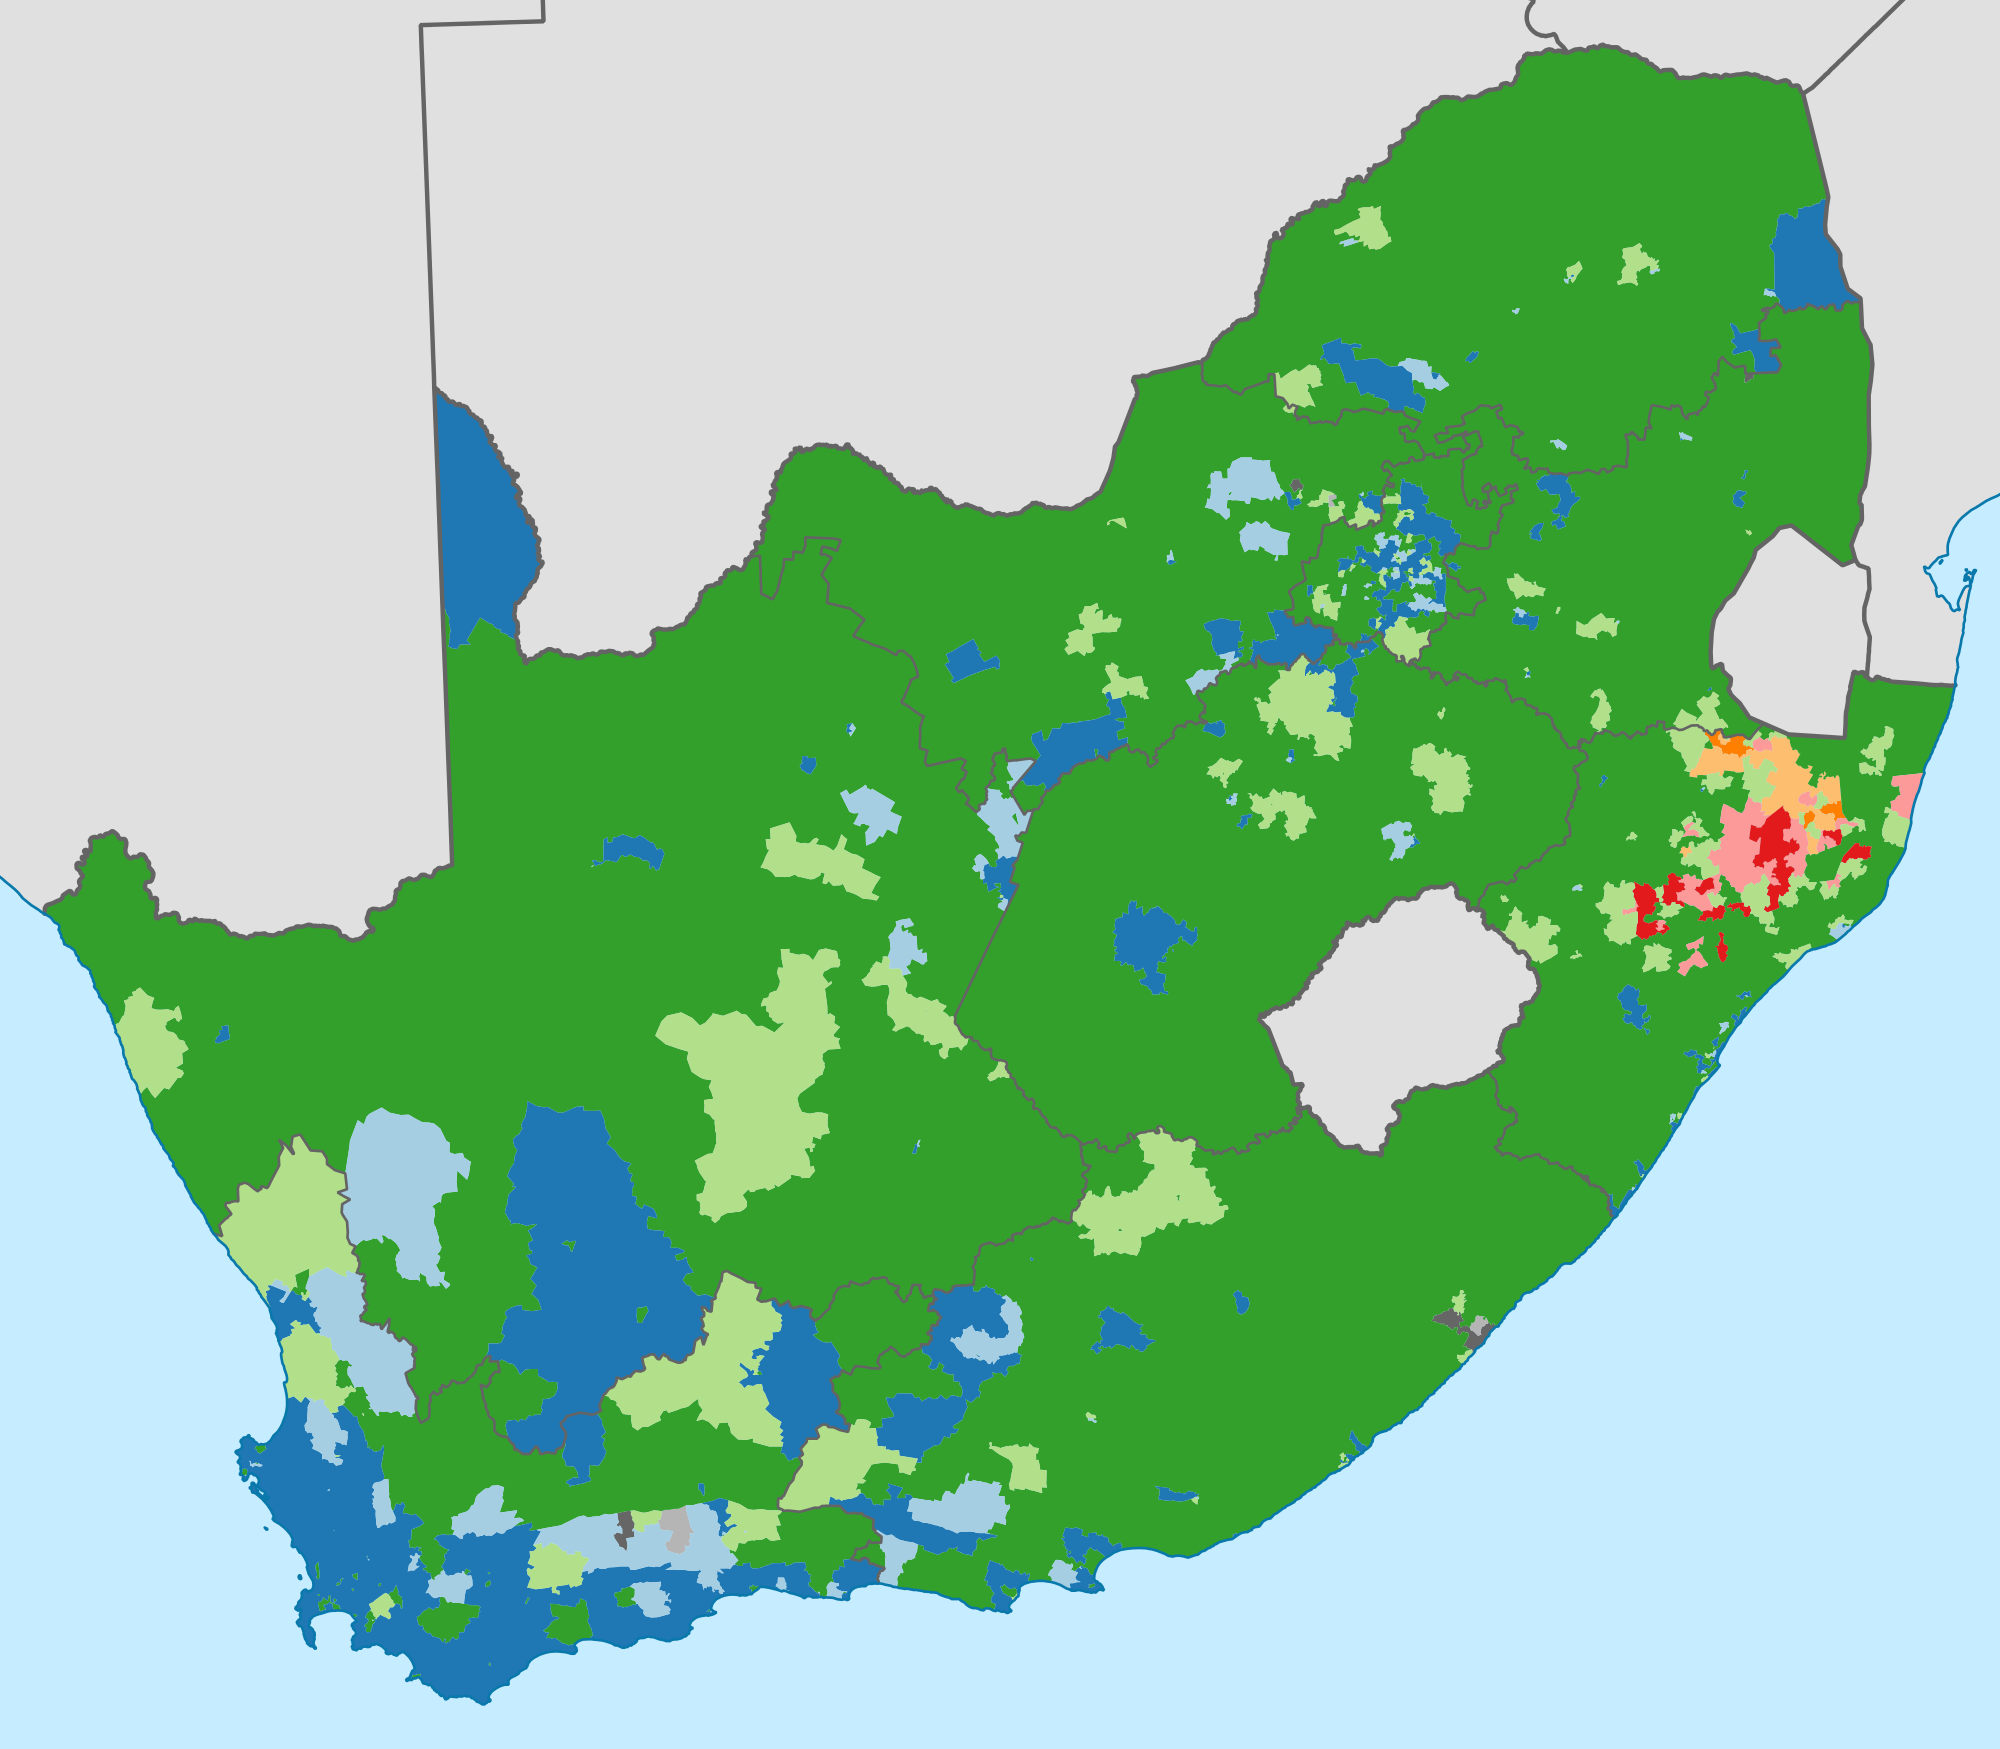 South_Africa_national_election_2014_winner_by_ward.svg